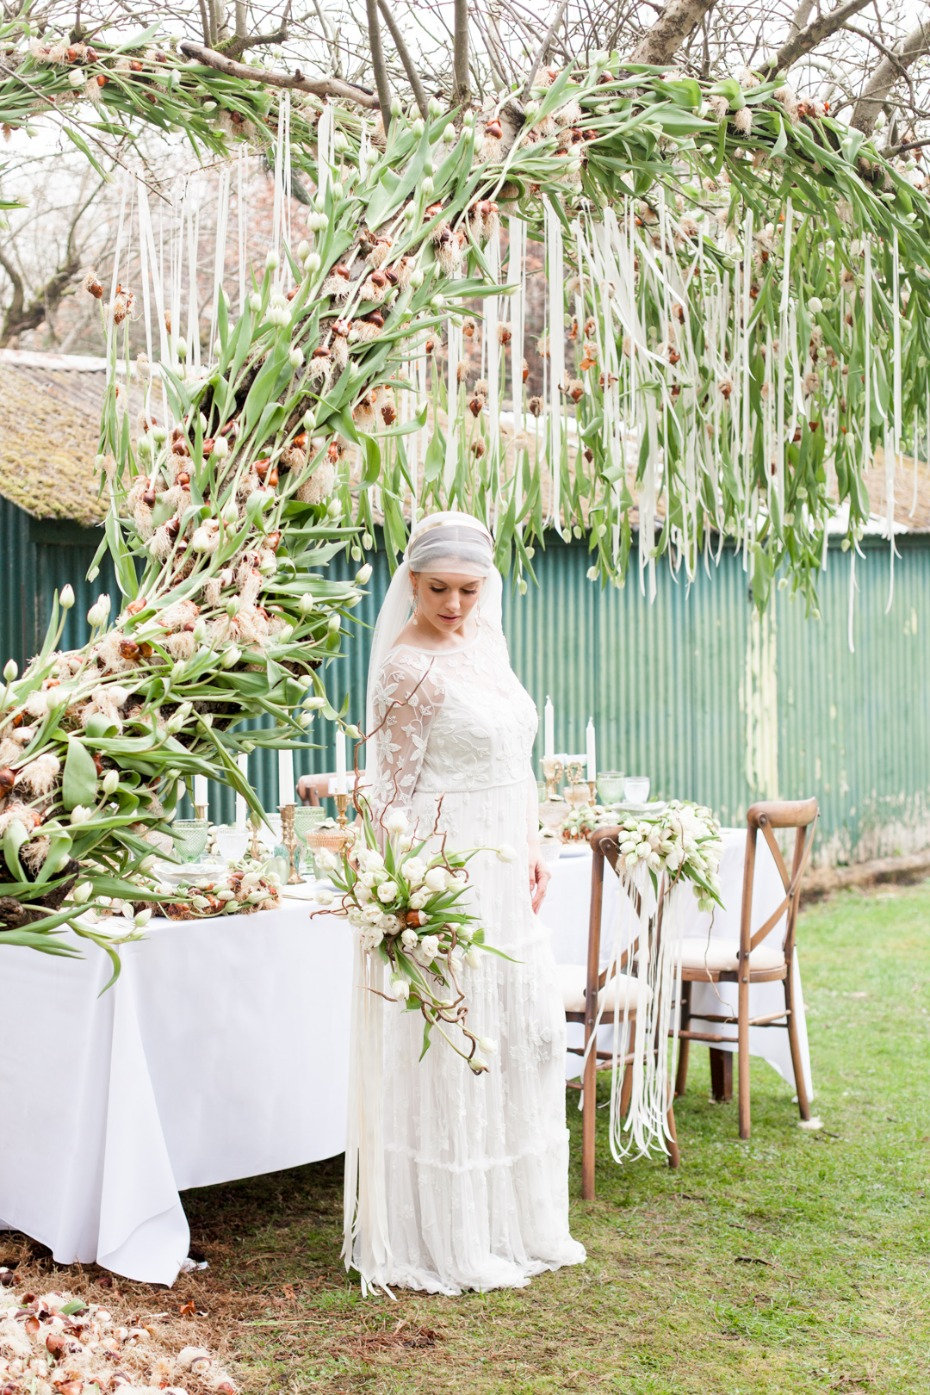 Tulip Mania inspired wedding shoot